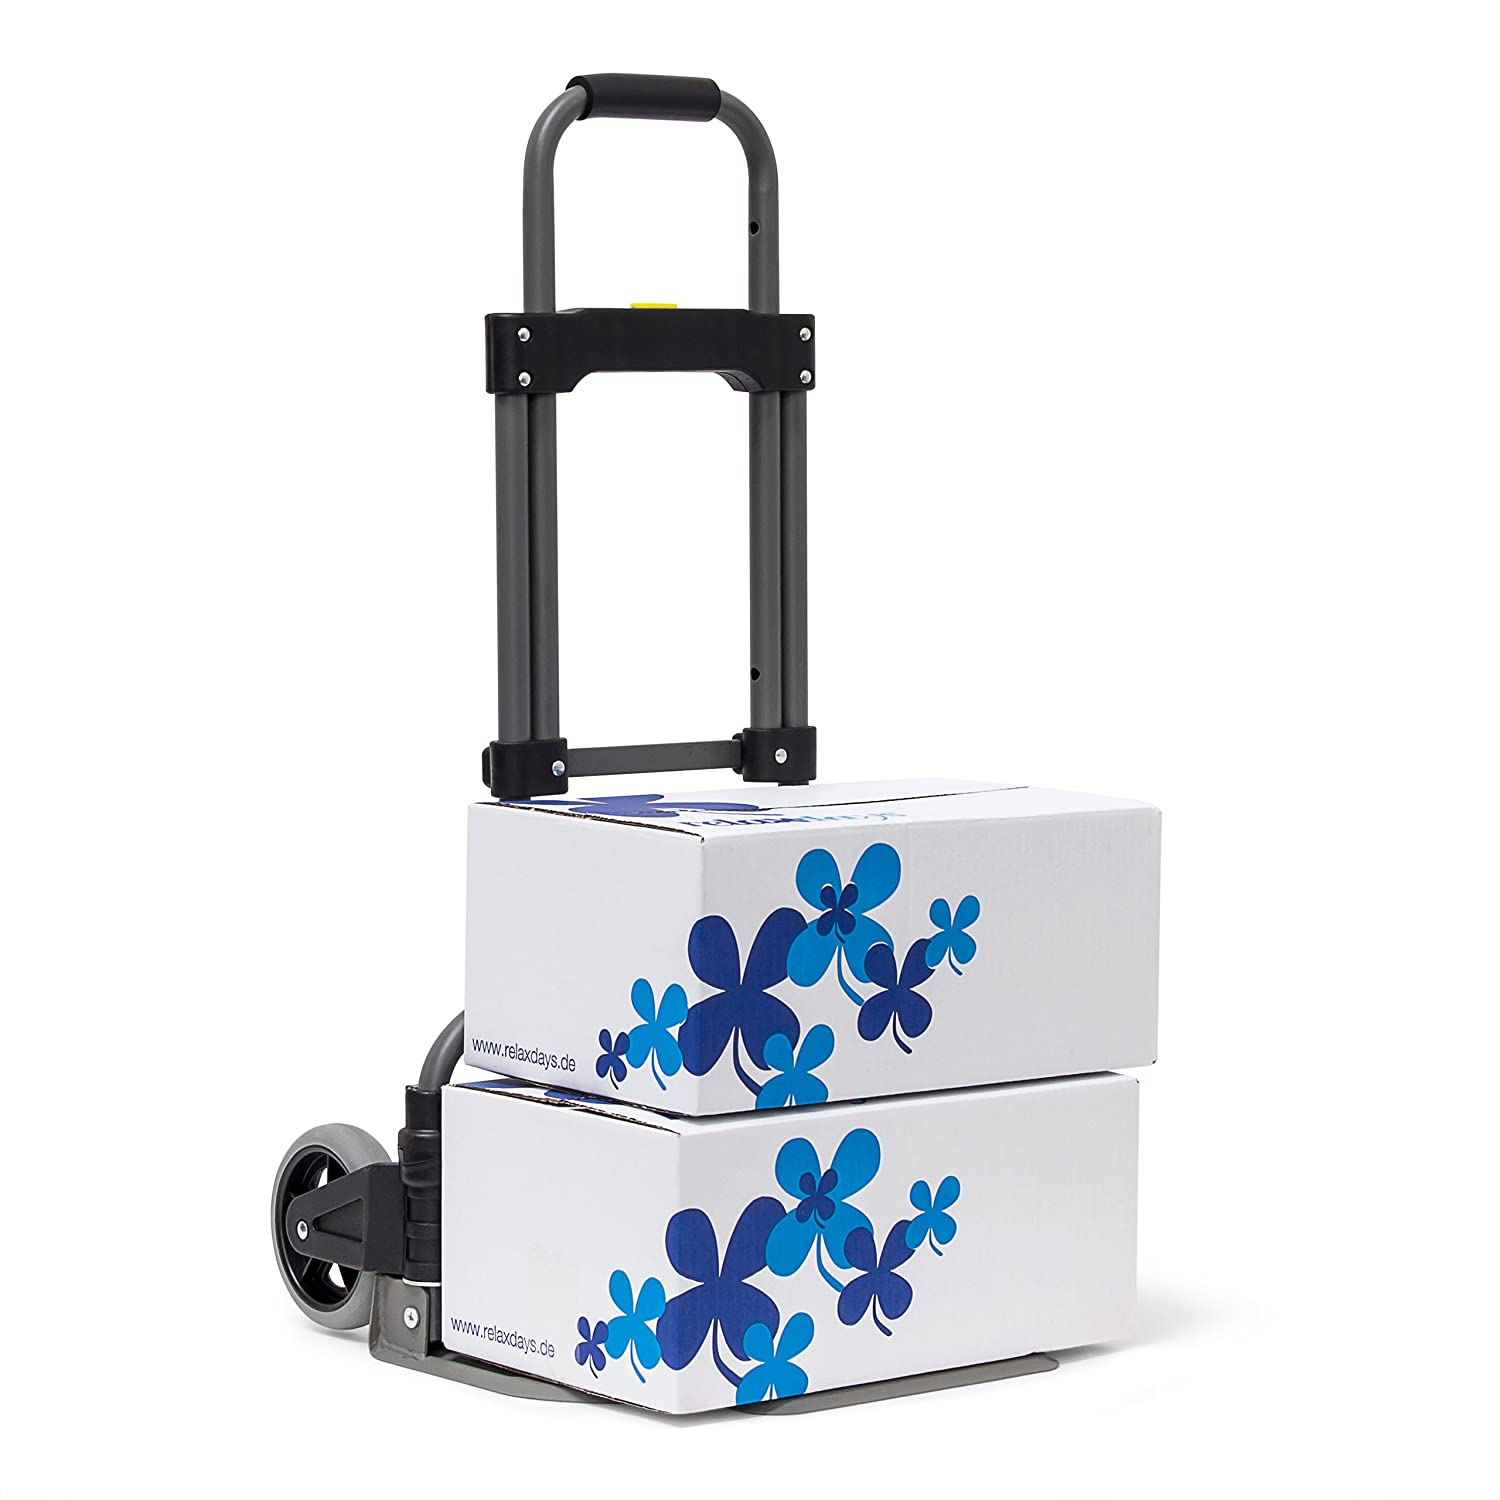 Relaxdays Transport Trolley For Max 70 kg (154 lbs), 97.5 x 39 x 42 cm, Sack Truck Iron & Synthetic W Telescope Handle, Hand Cart With Big Wheels, Luggage Trolley For Moving, Transport, Metallic 10019097